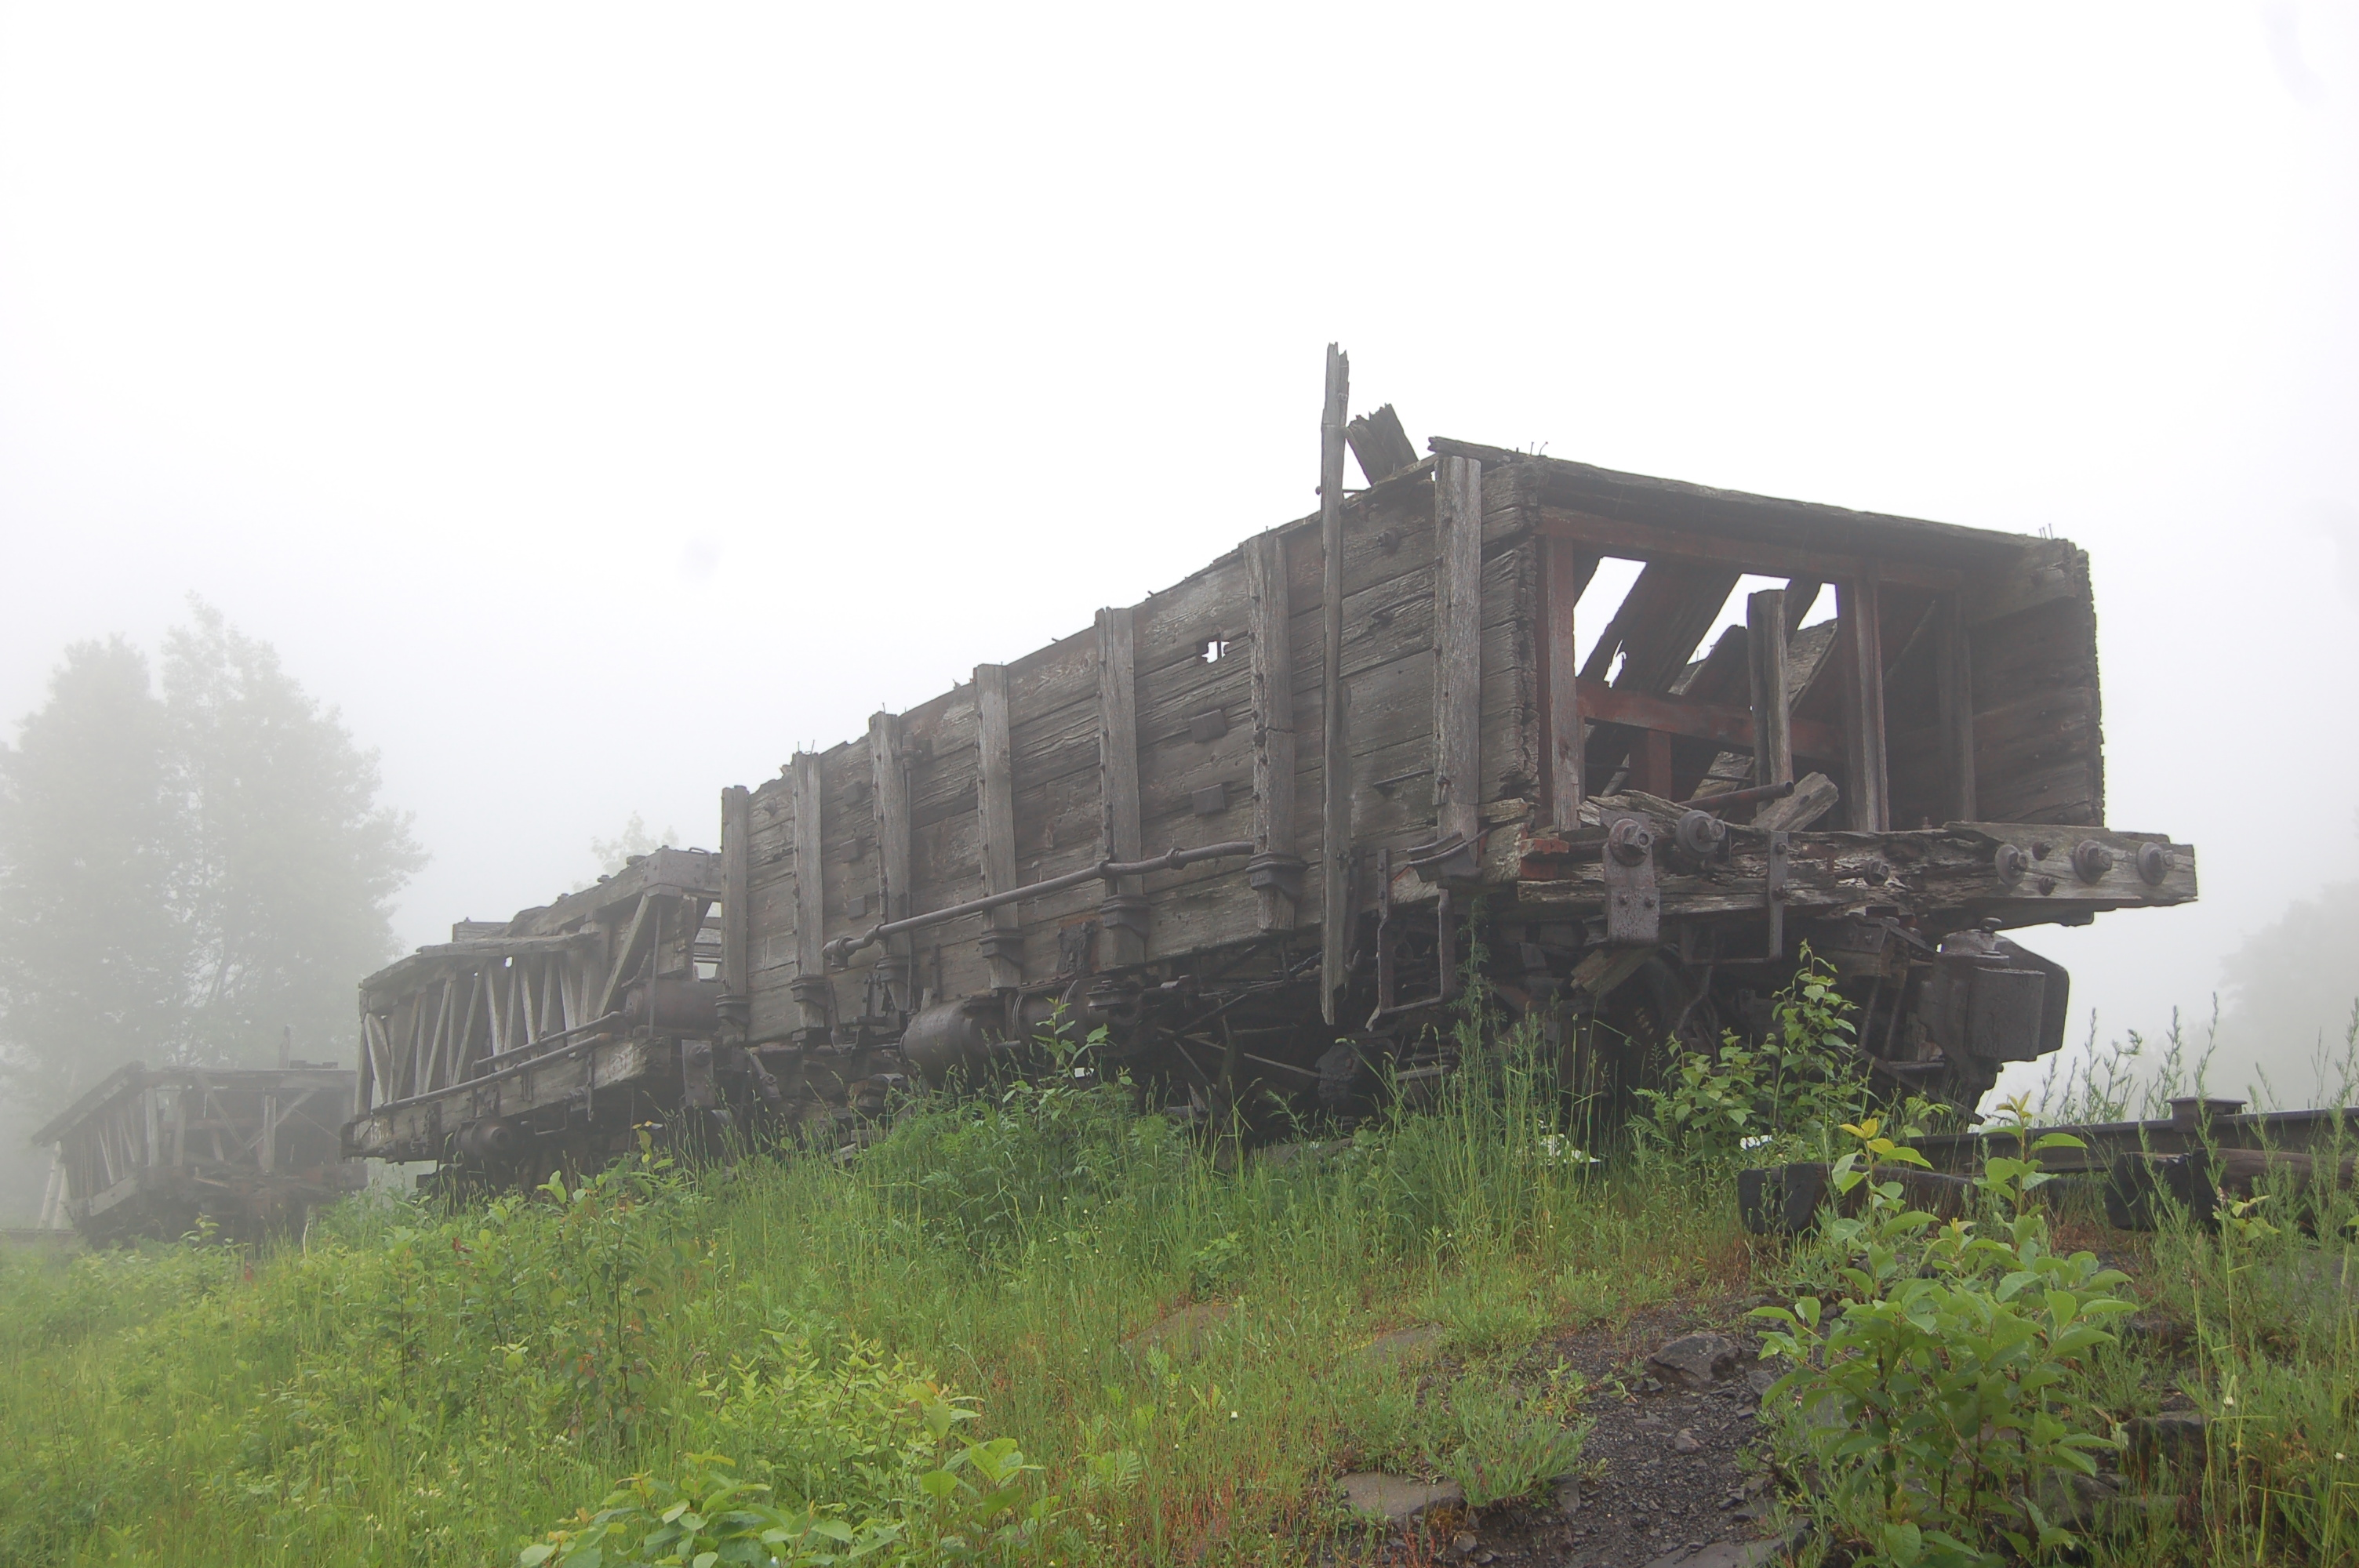 Quincy Mine Railcar